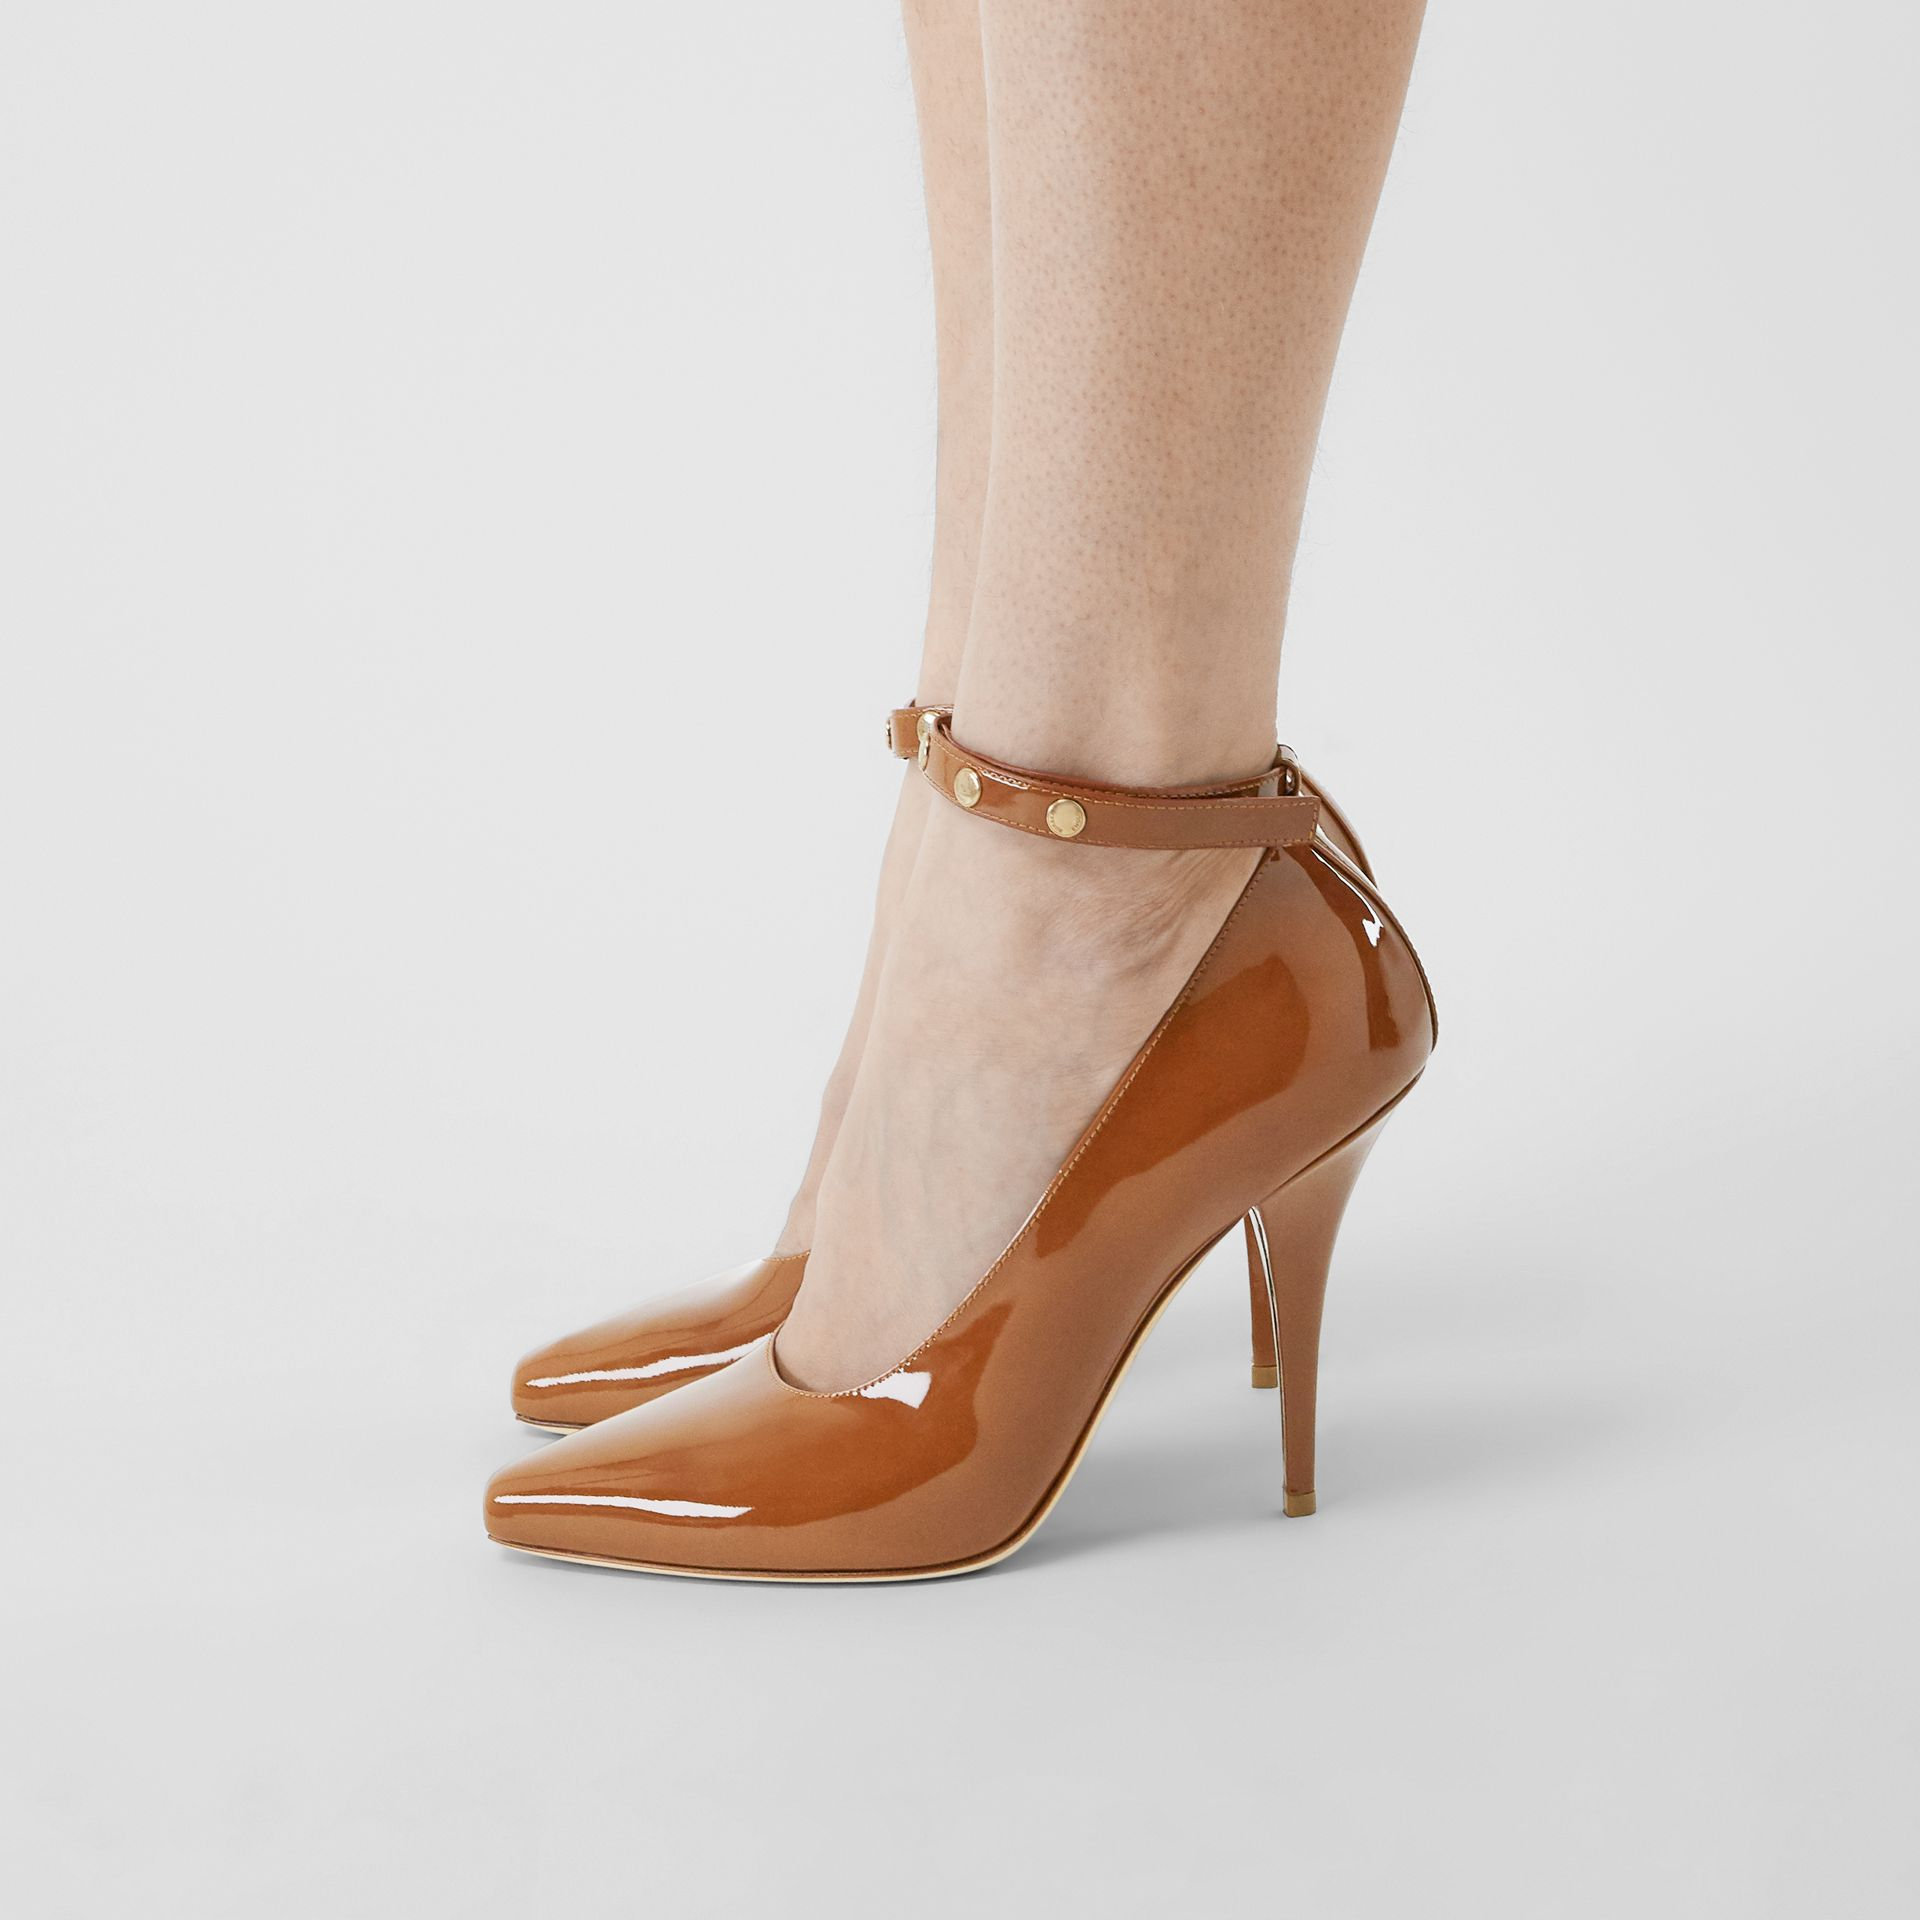 Triple Stud Patent Leather Point-toe Pumps in Tan - Women | Burberry Australia - gallery image 1